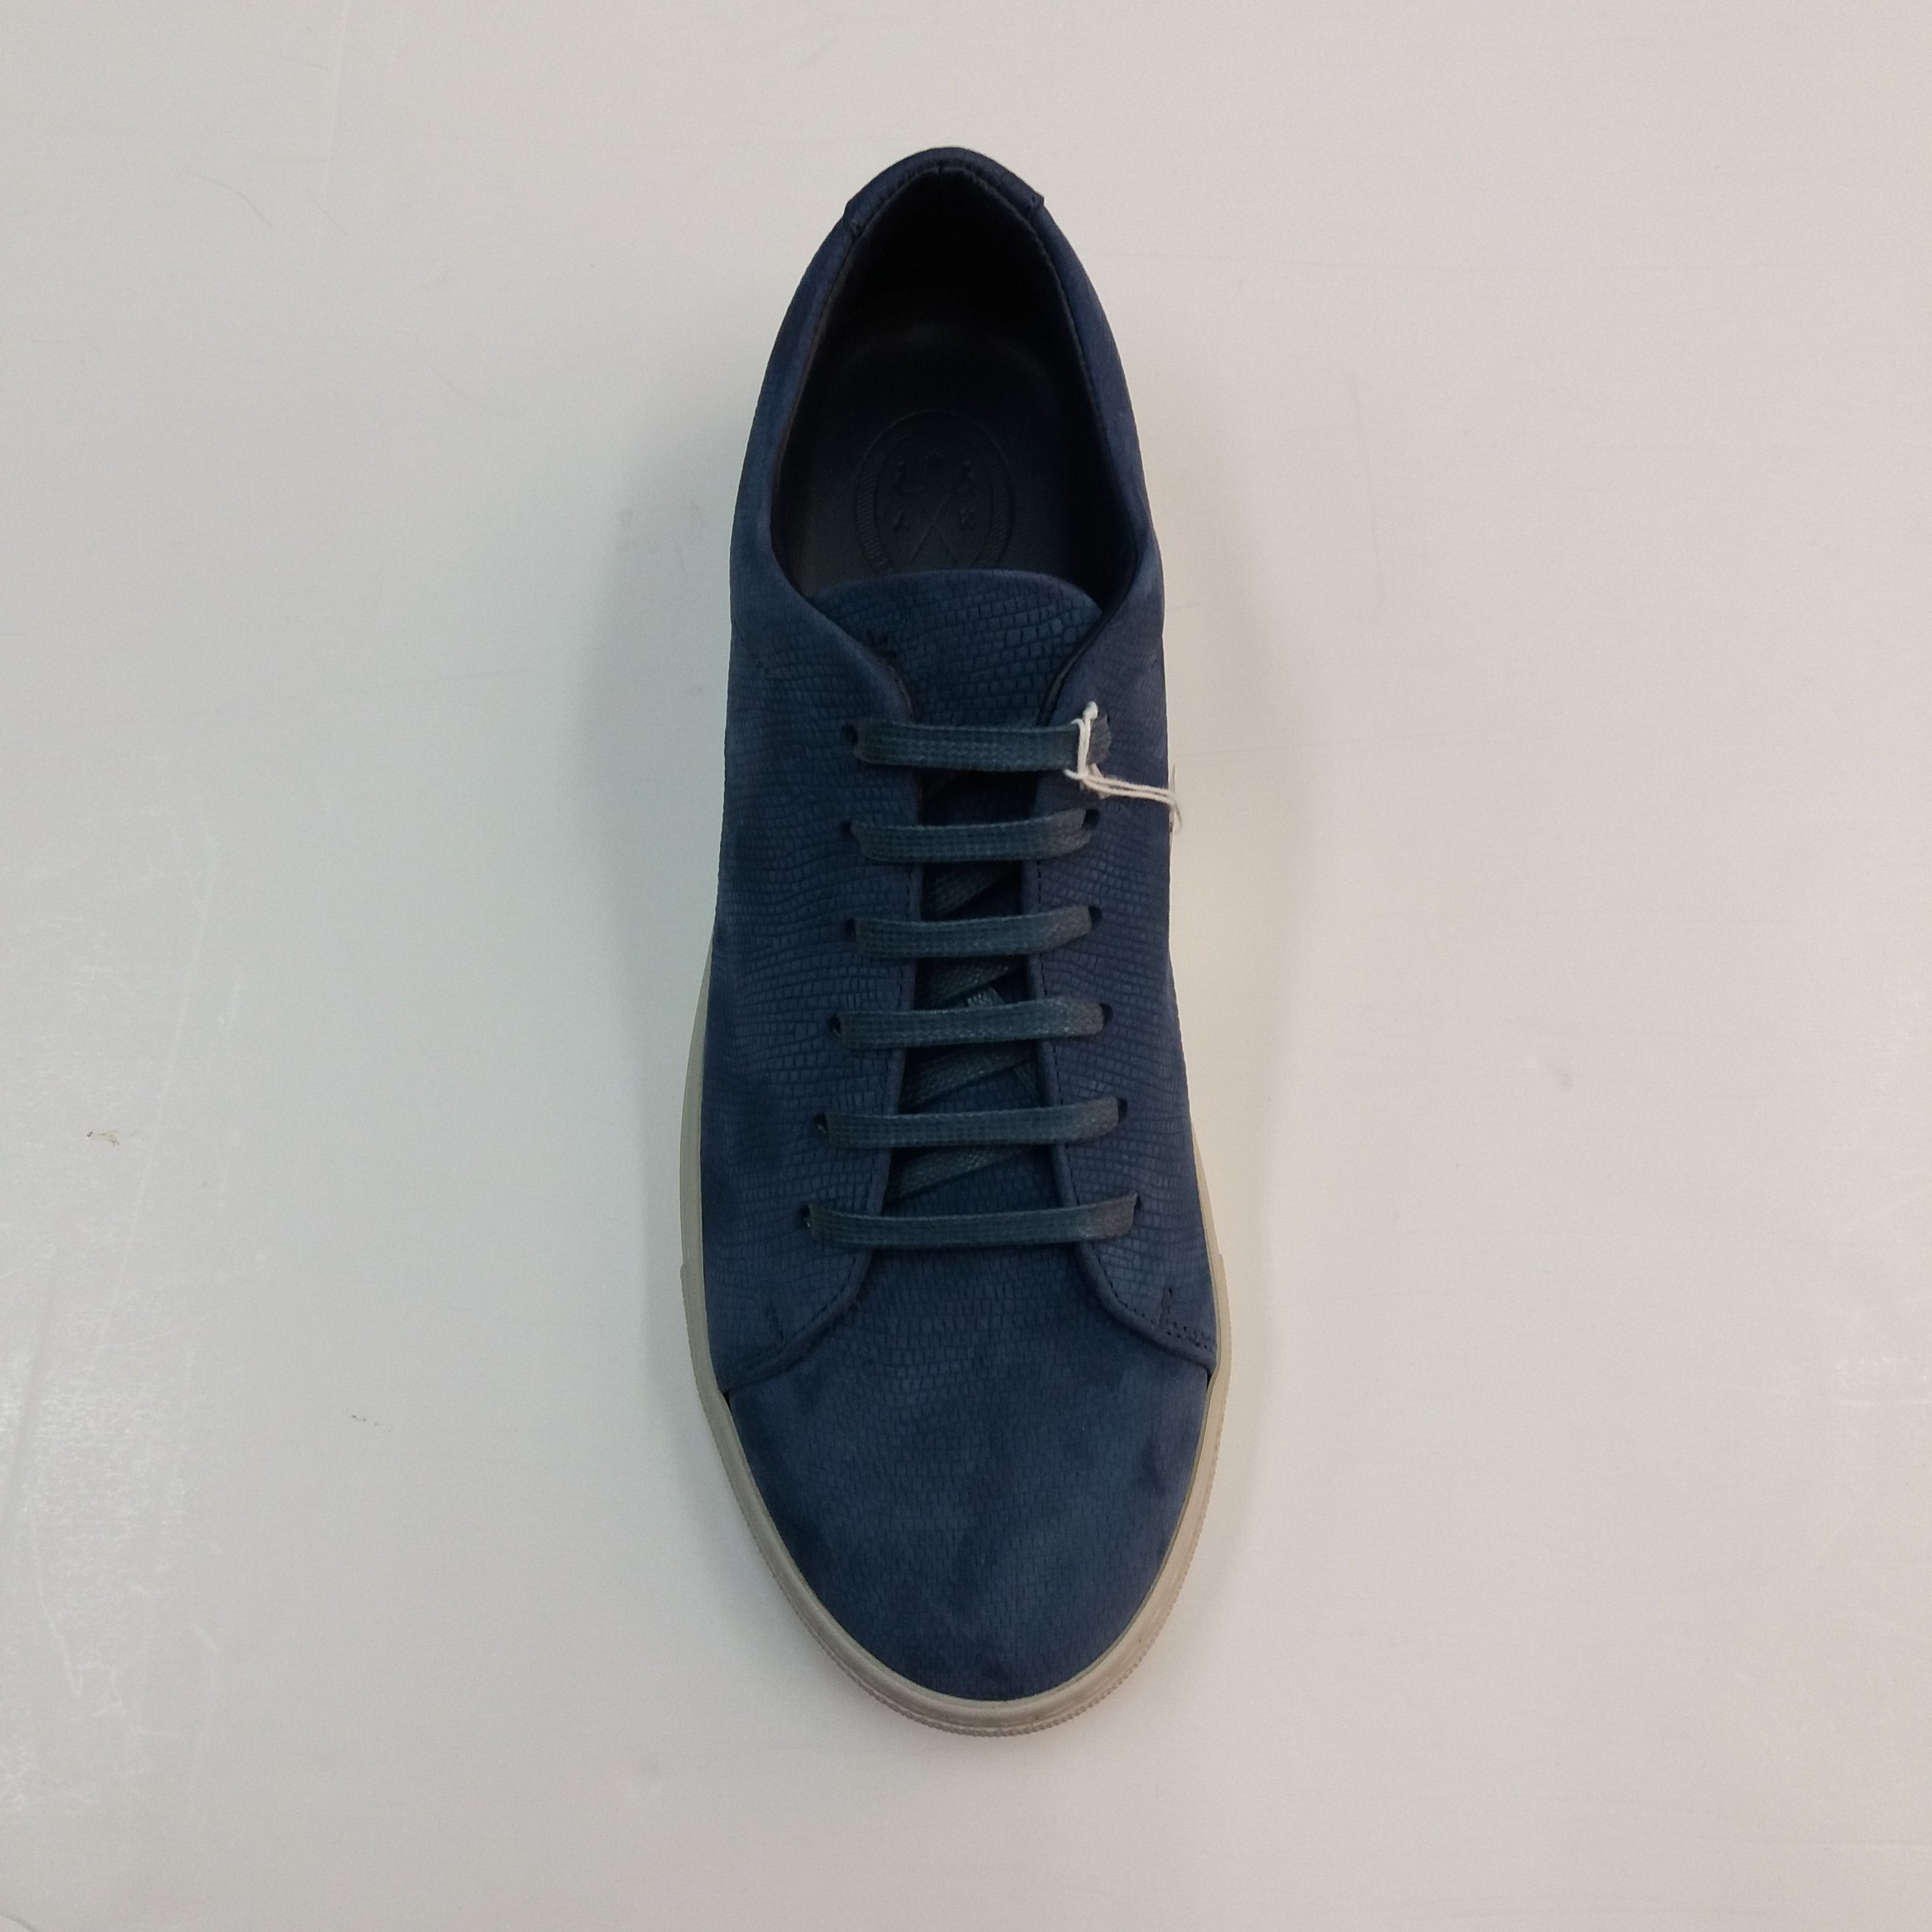 Andrea Zori Sisso Carta Sneakers Blue Lizard Effect.